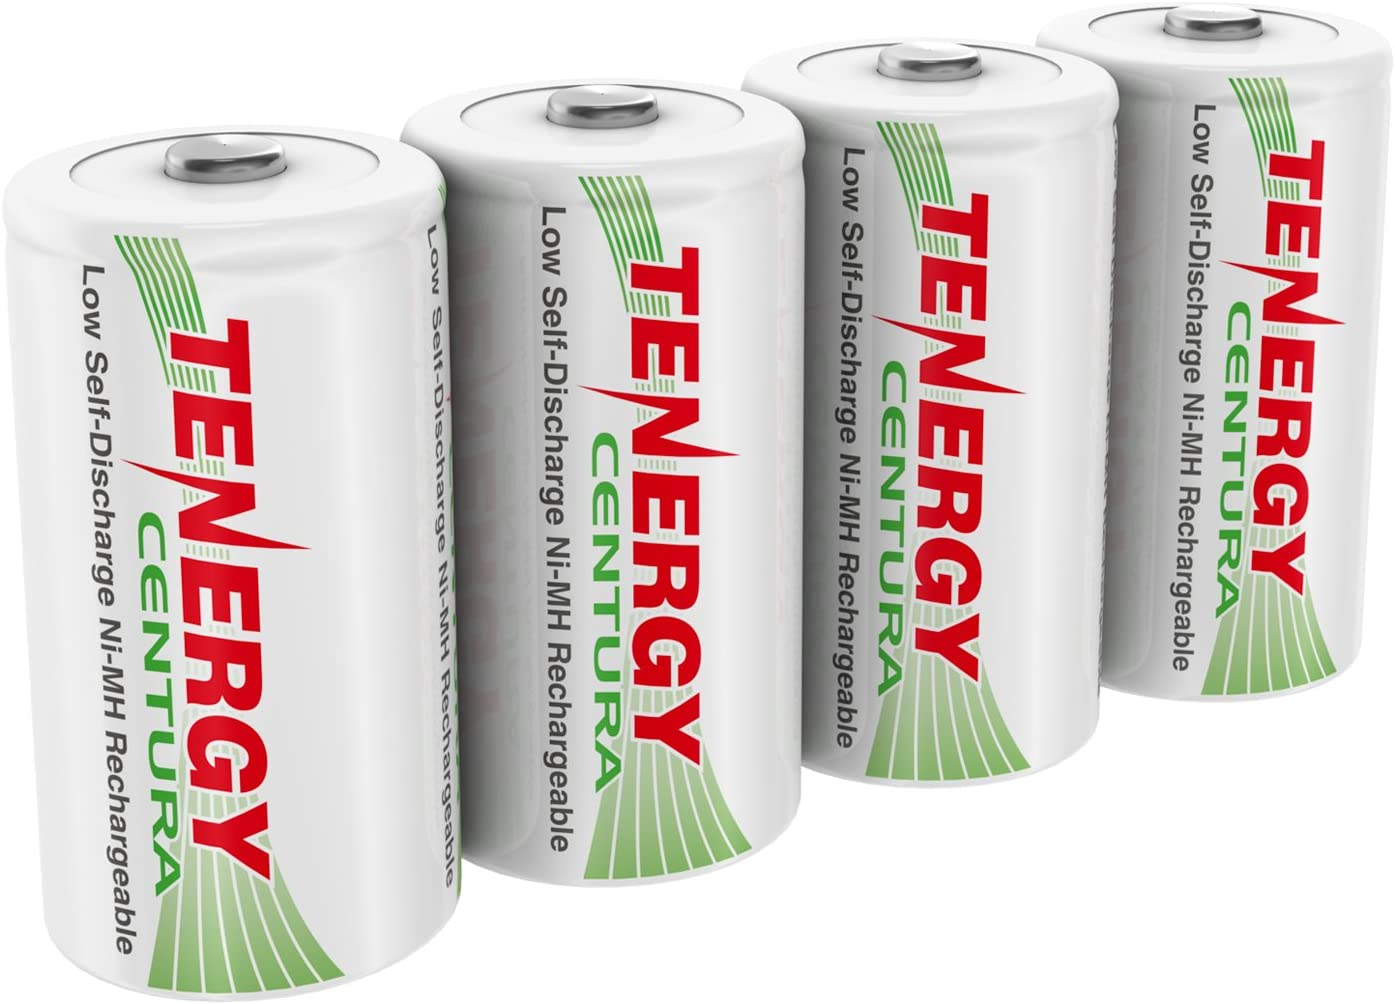 4 Pack Pre-Charged D Size Battery 8000mAh Low Self Discharge D Cell Batteries UL Certified Tenergy Centura 1.2V NiMH Rechargeable D Battery